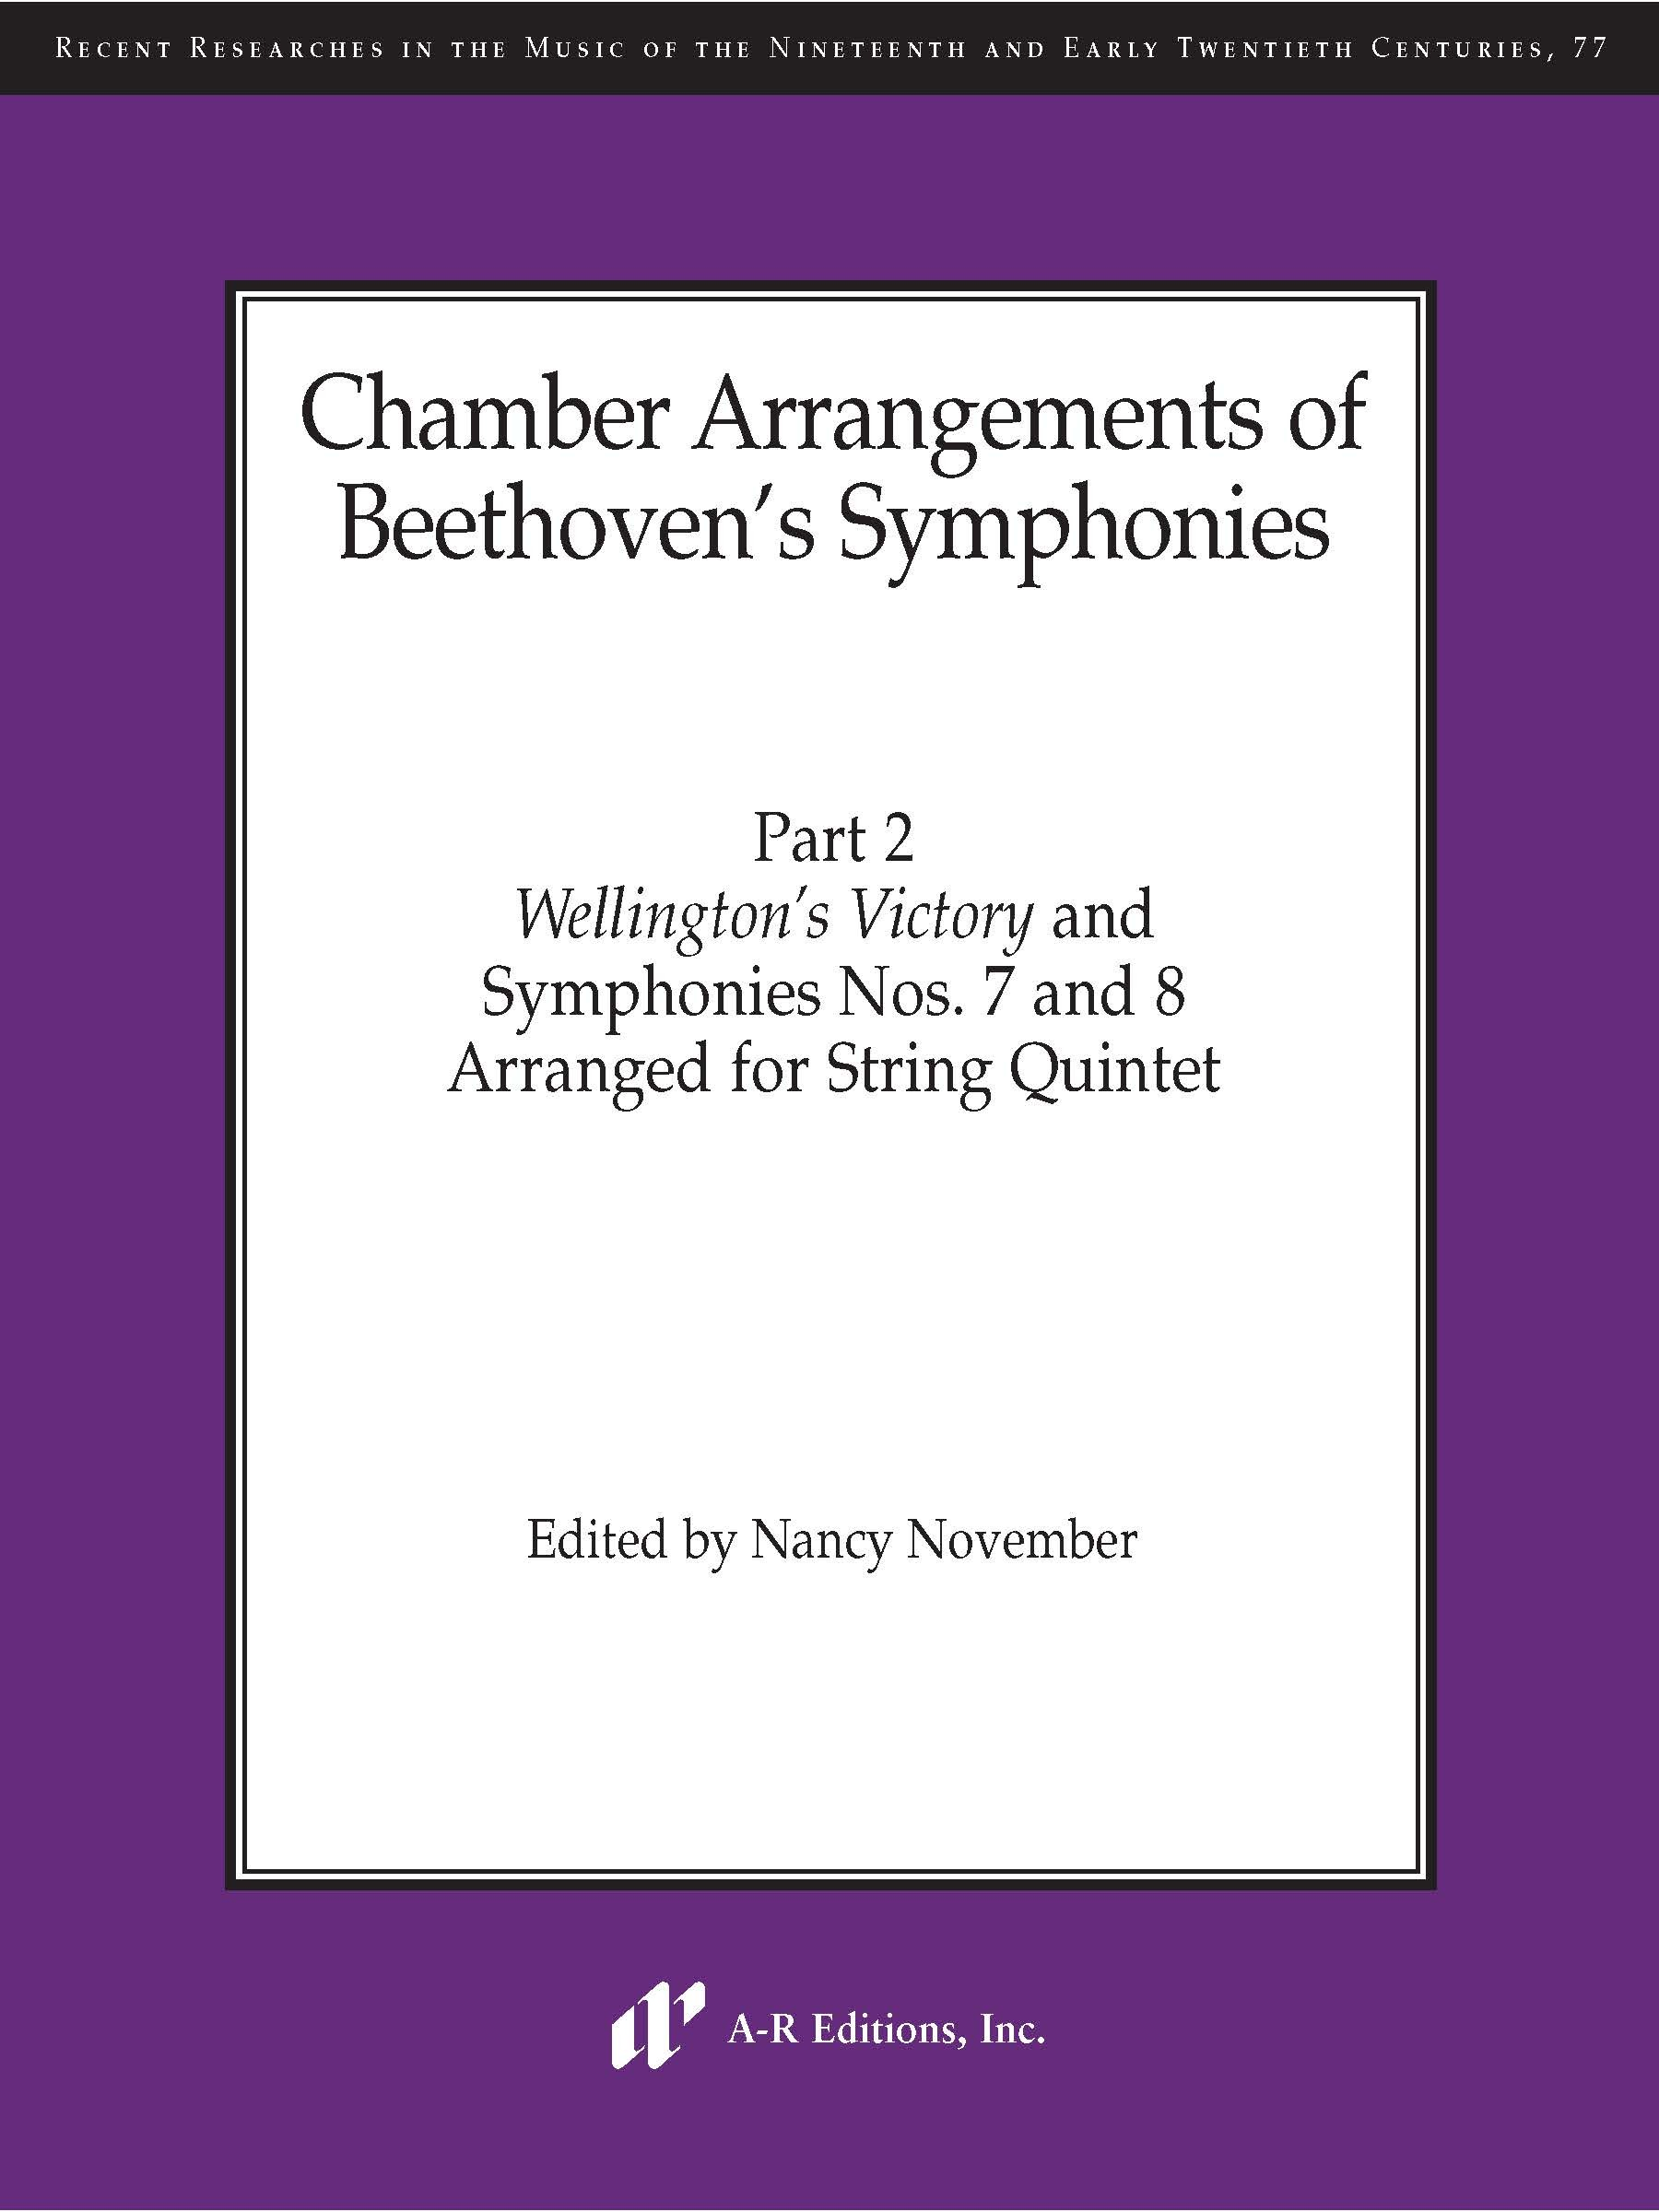 Chamber Arrangements of Beethoven's Symphonies, Part 2